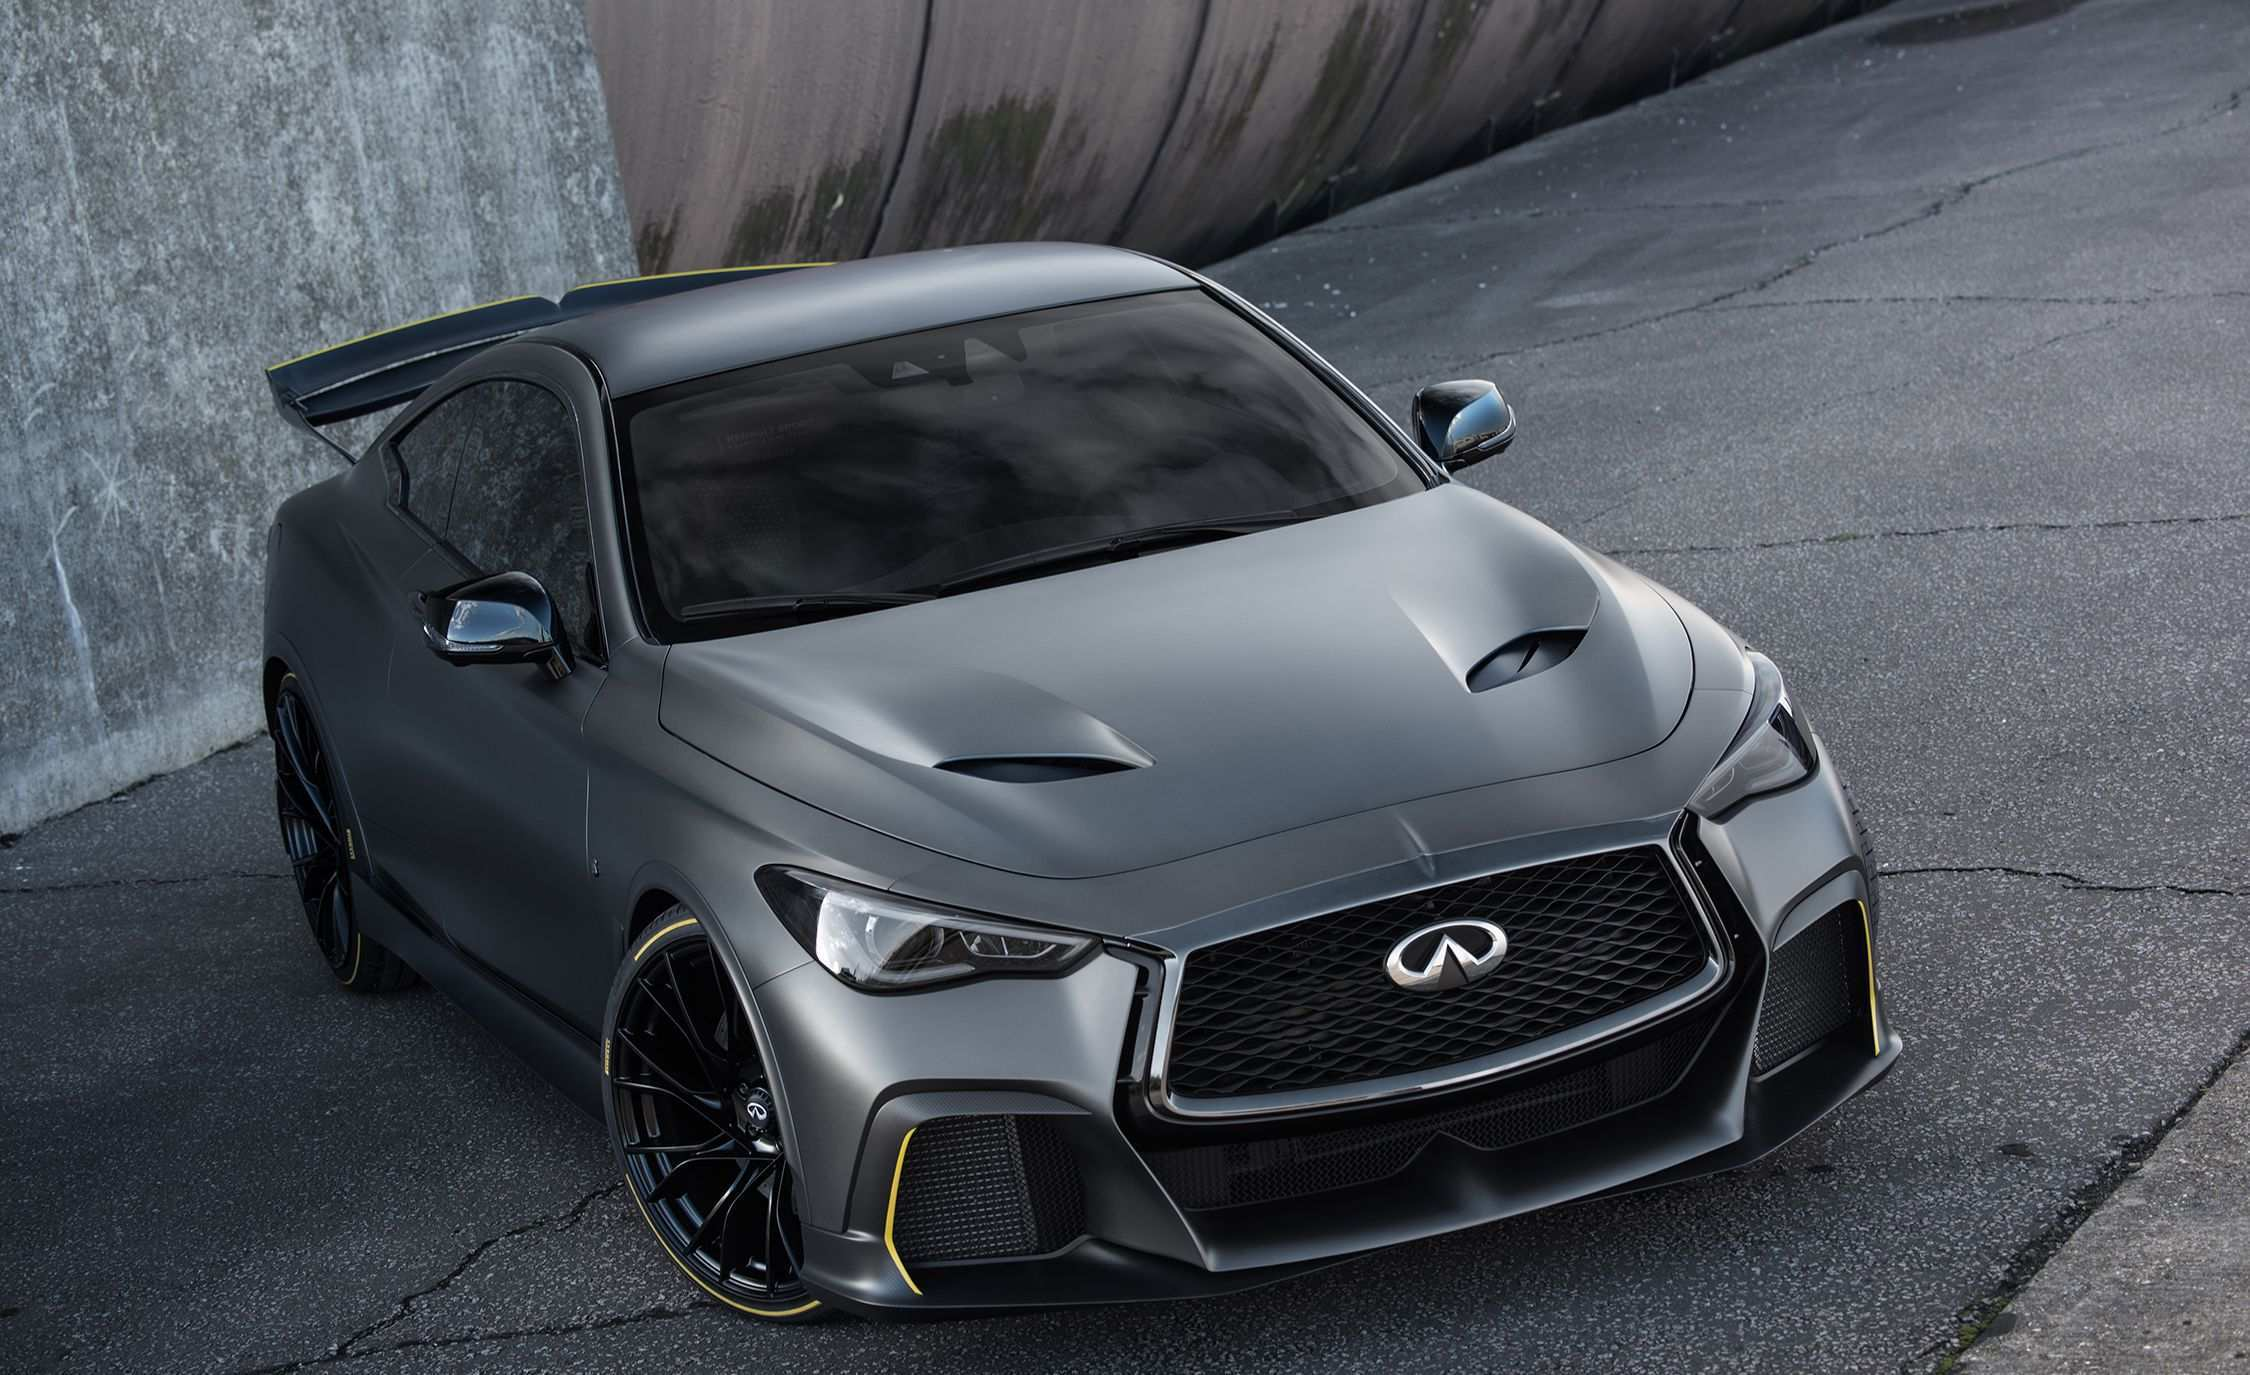 21 The Best 2019 Infiniti Q60s Price